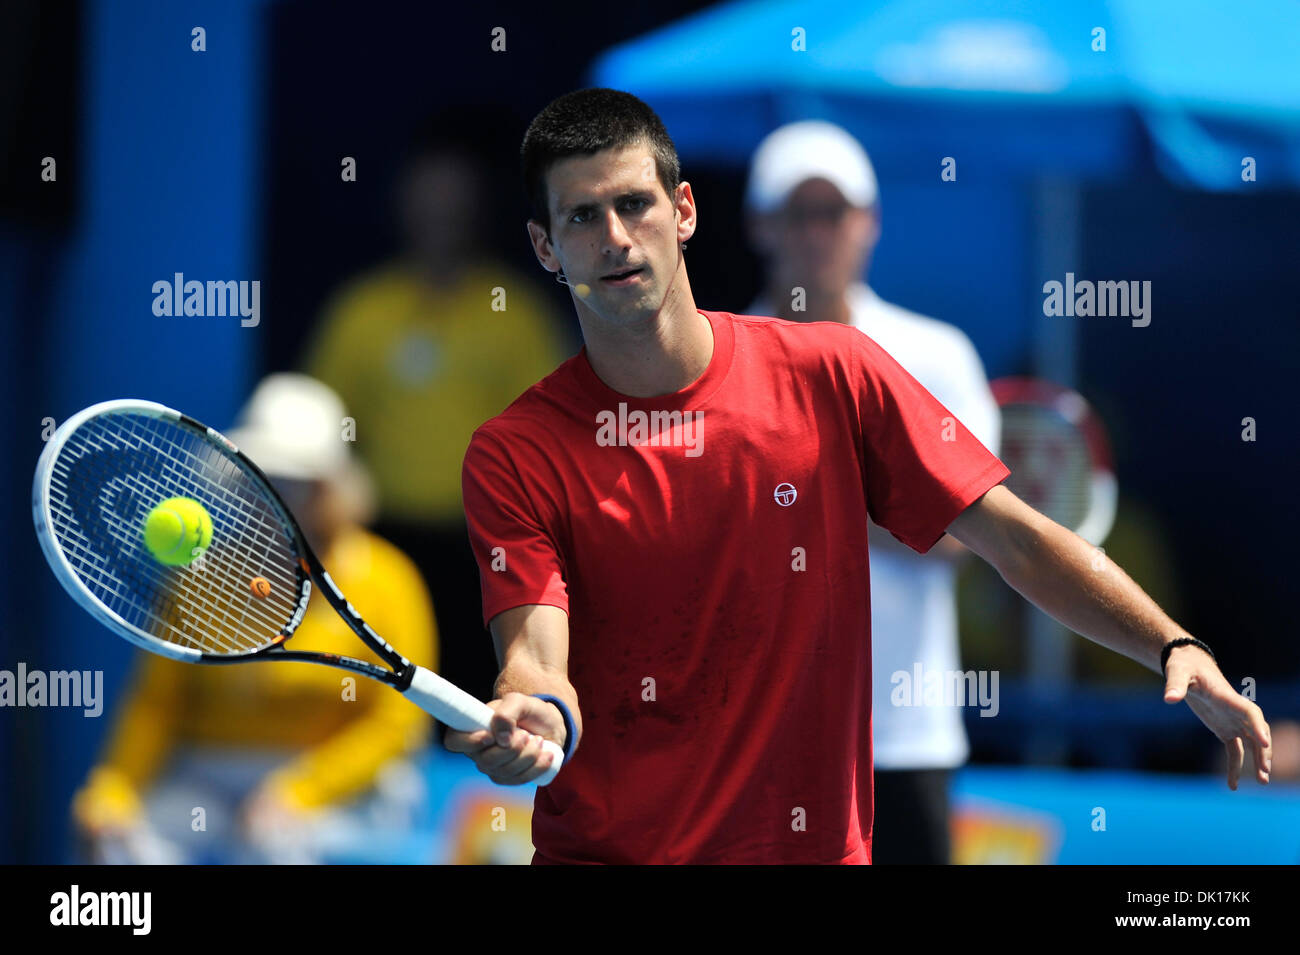 Jan. 16, 2011 - Melbourne, Victoria, Australia - Novak Djokovic hits a volley at the Rally For Relief charity exhibition match by top players of the 2011 Australian Open at Melbourne Park. (Credit Image: © Sydney Low/Southcreek Global/ZUMAPRESS.com) - Stock Image